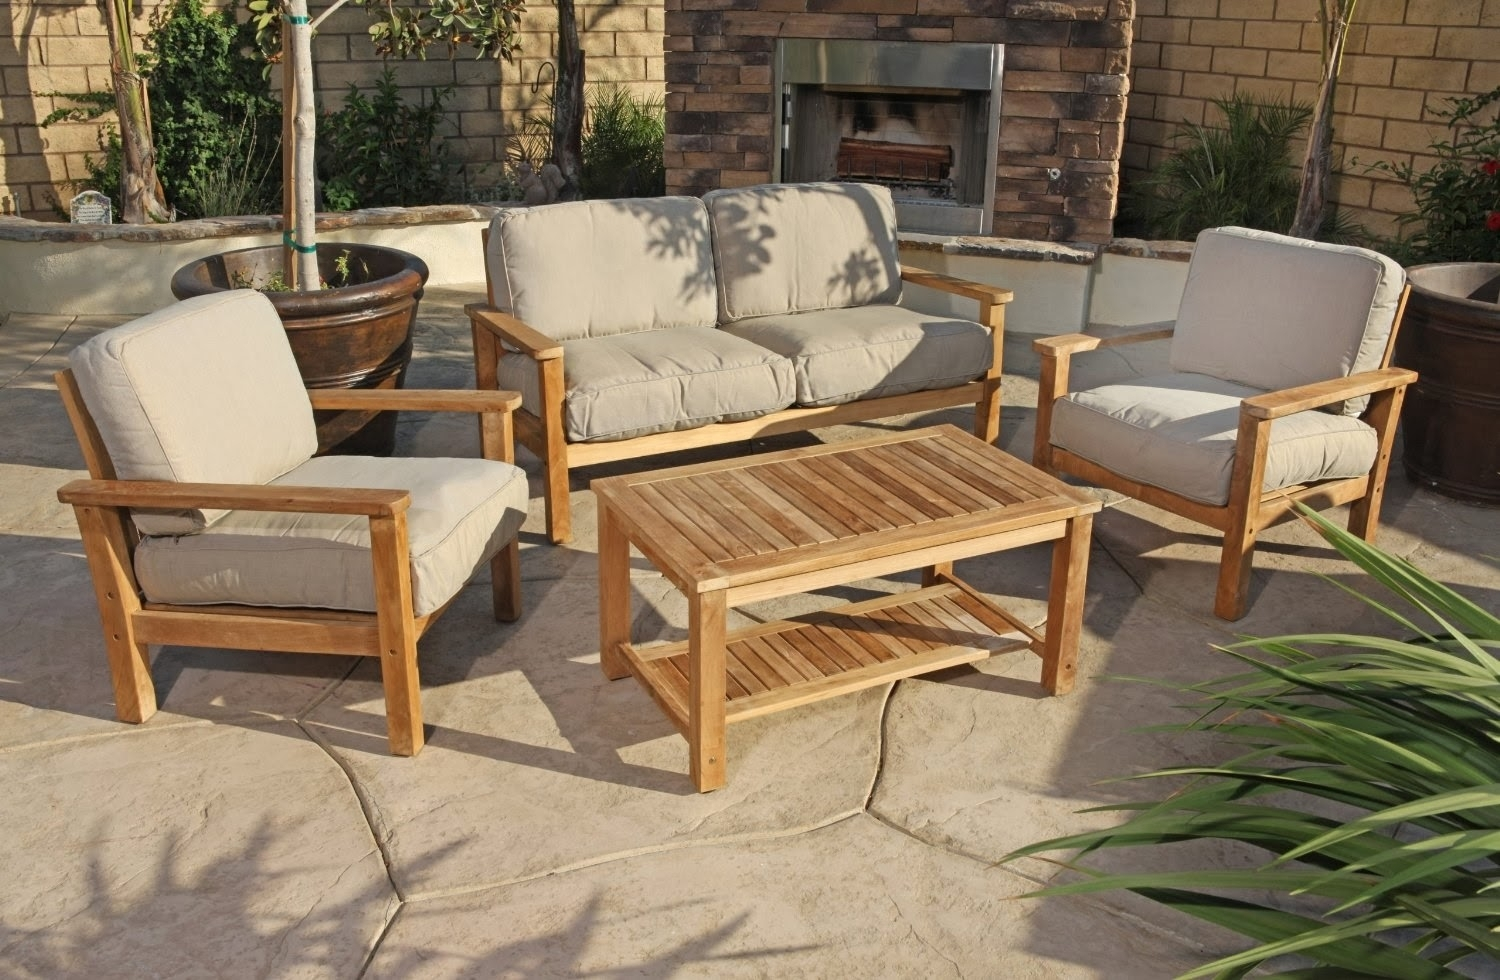 Simple Teak Smith And Hawken Outdoor Furniture - Simple Teak Smith And Hawken Outdoor Furniture – Madison Art Center